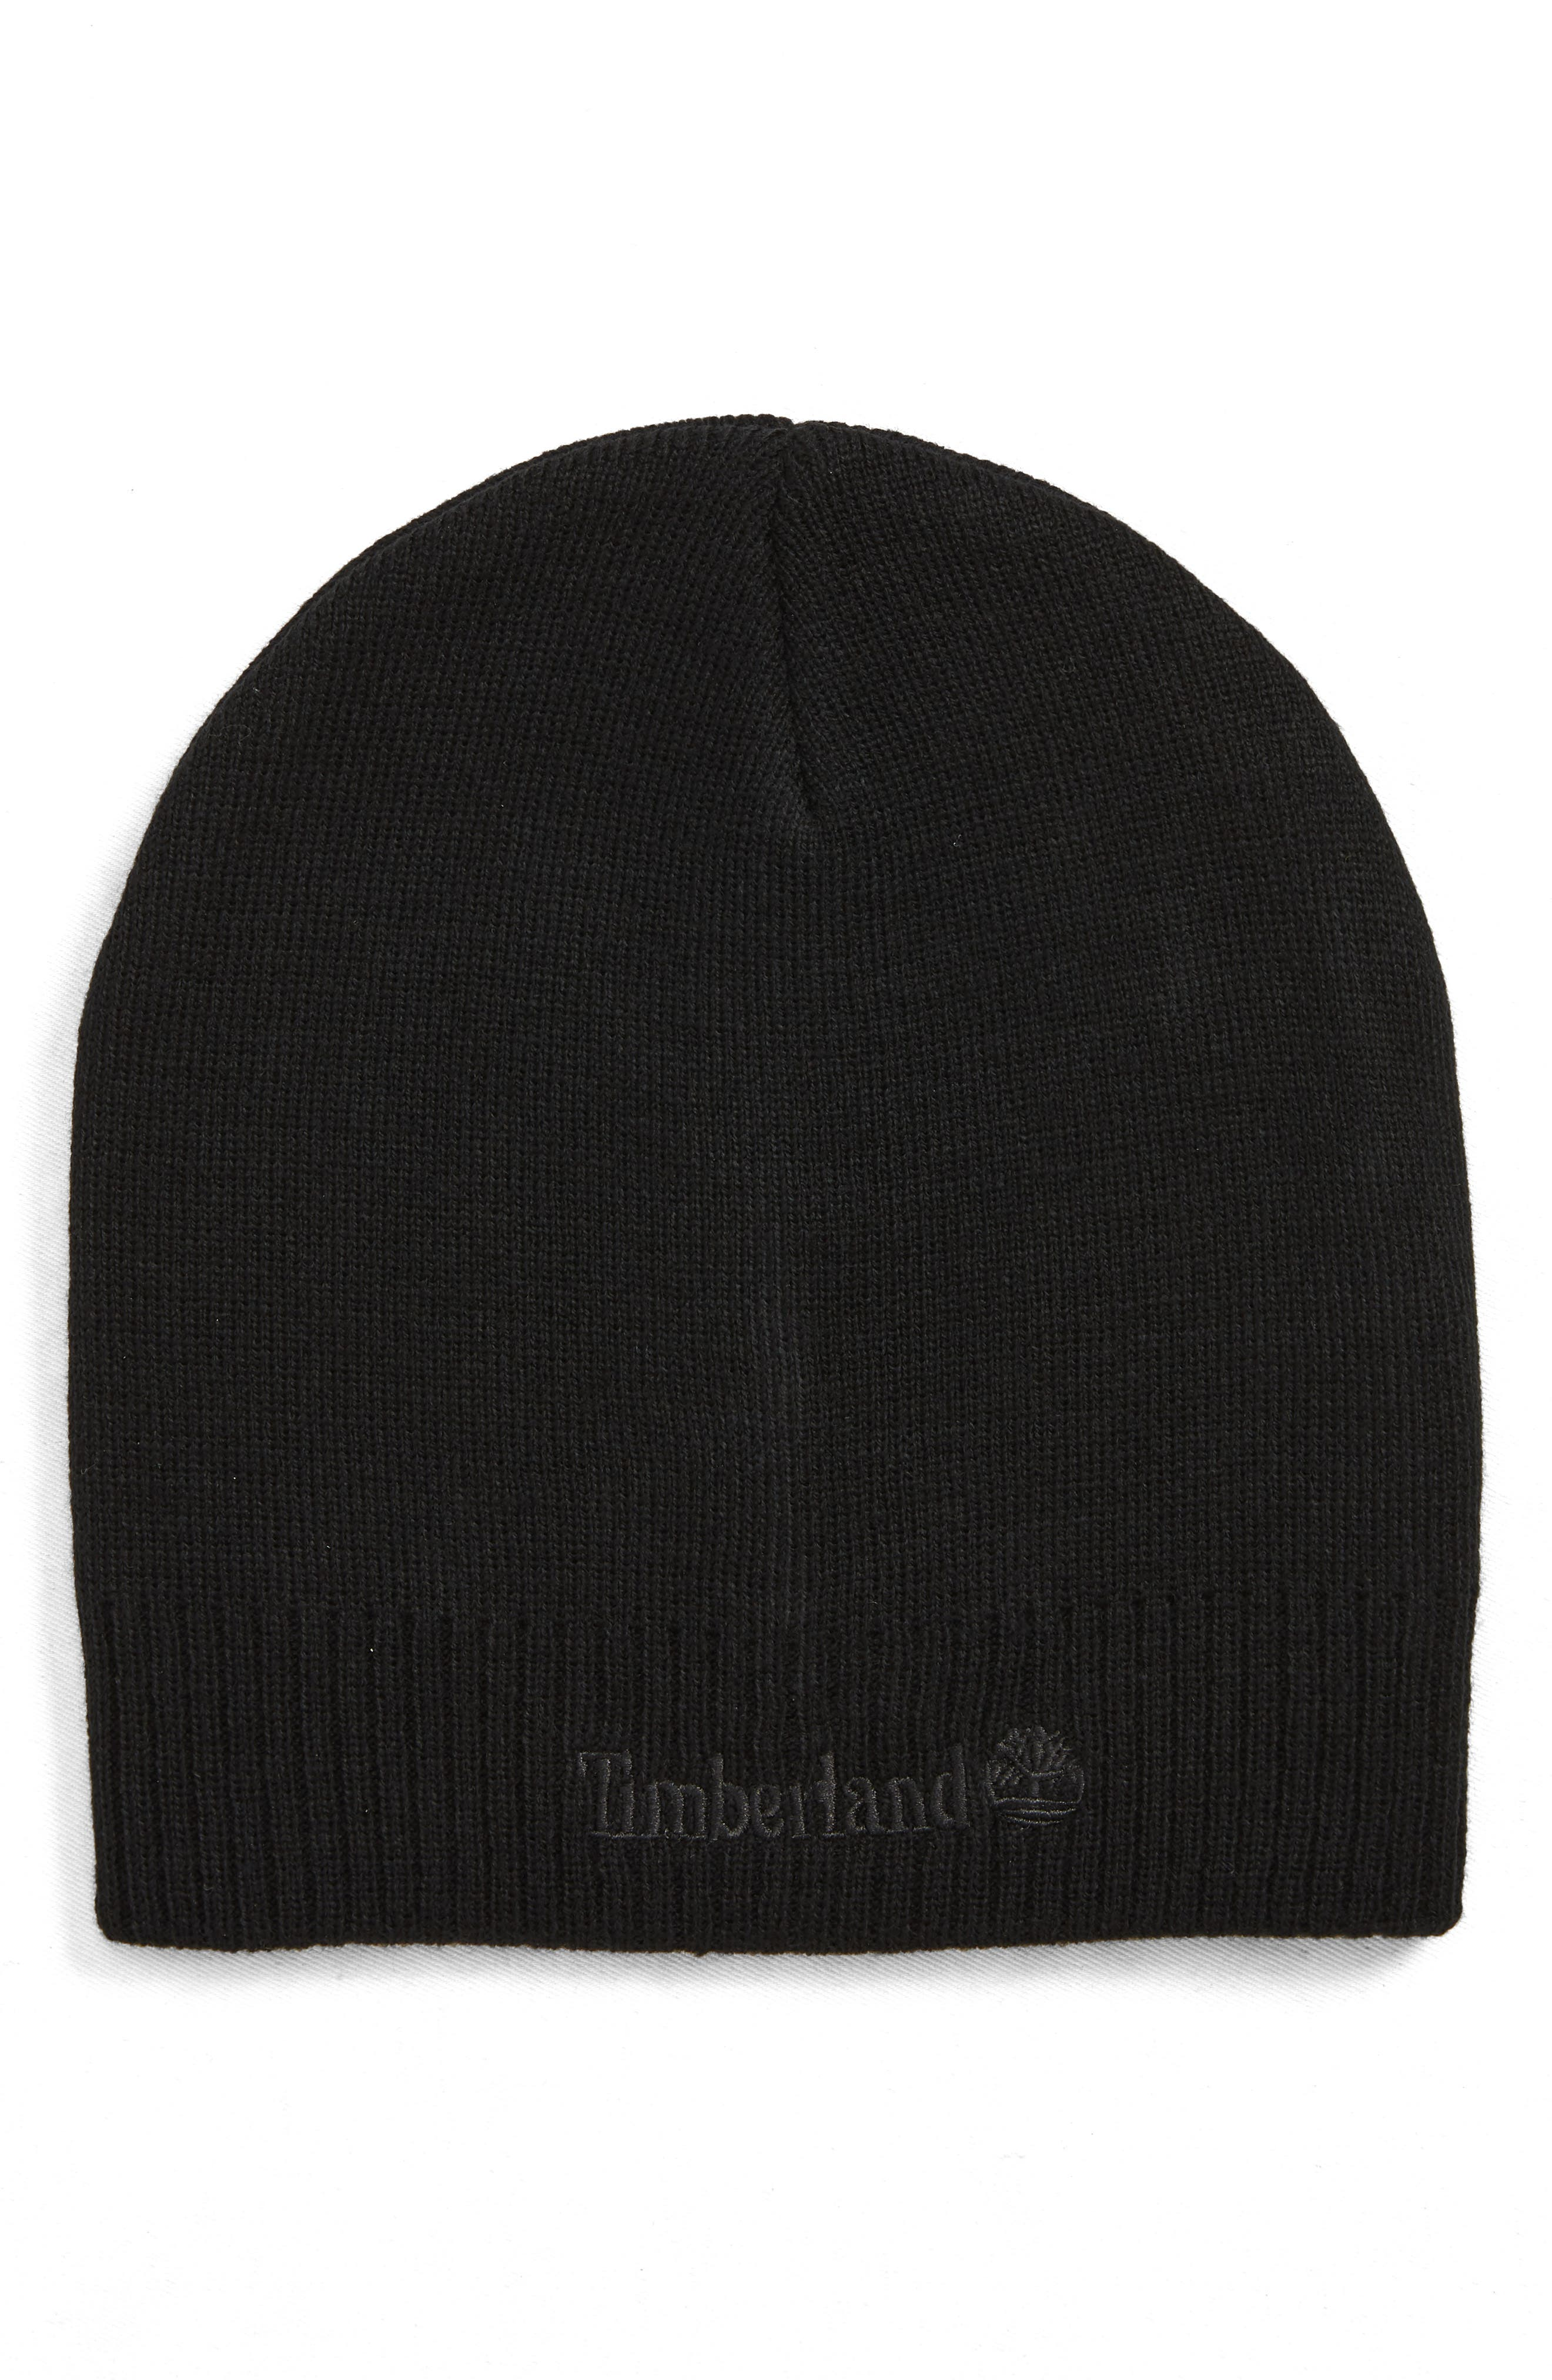 Timberland Embroidered Logo Knit Beanie - Black  ed668b37430e